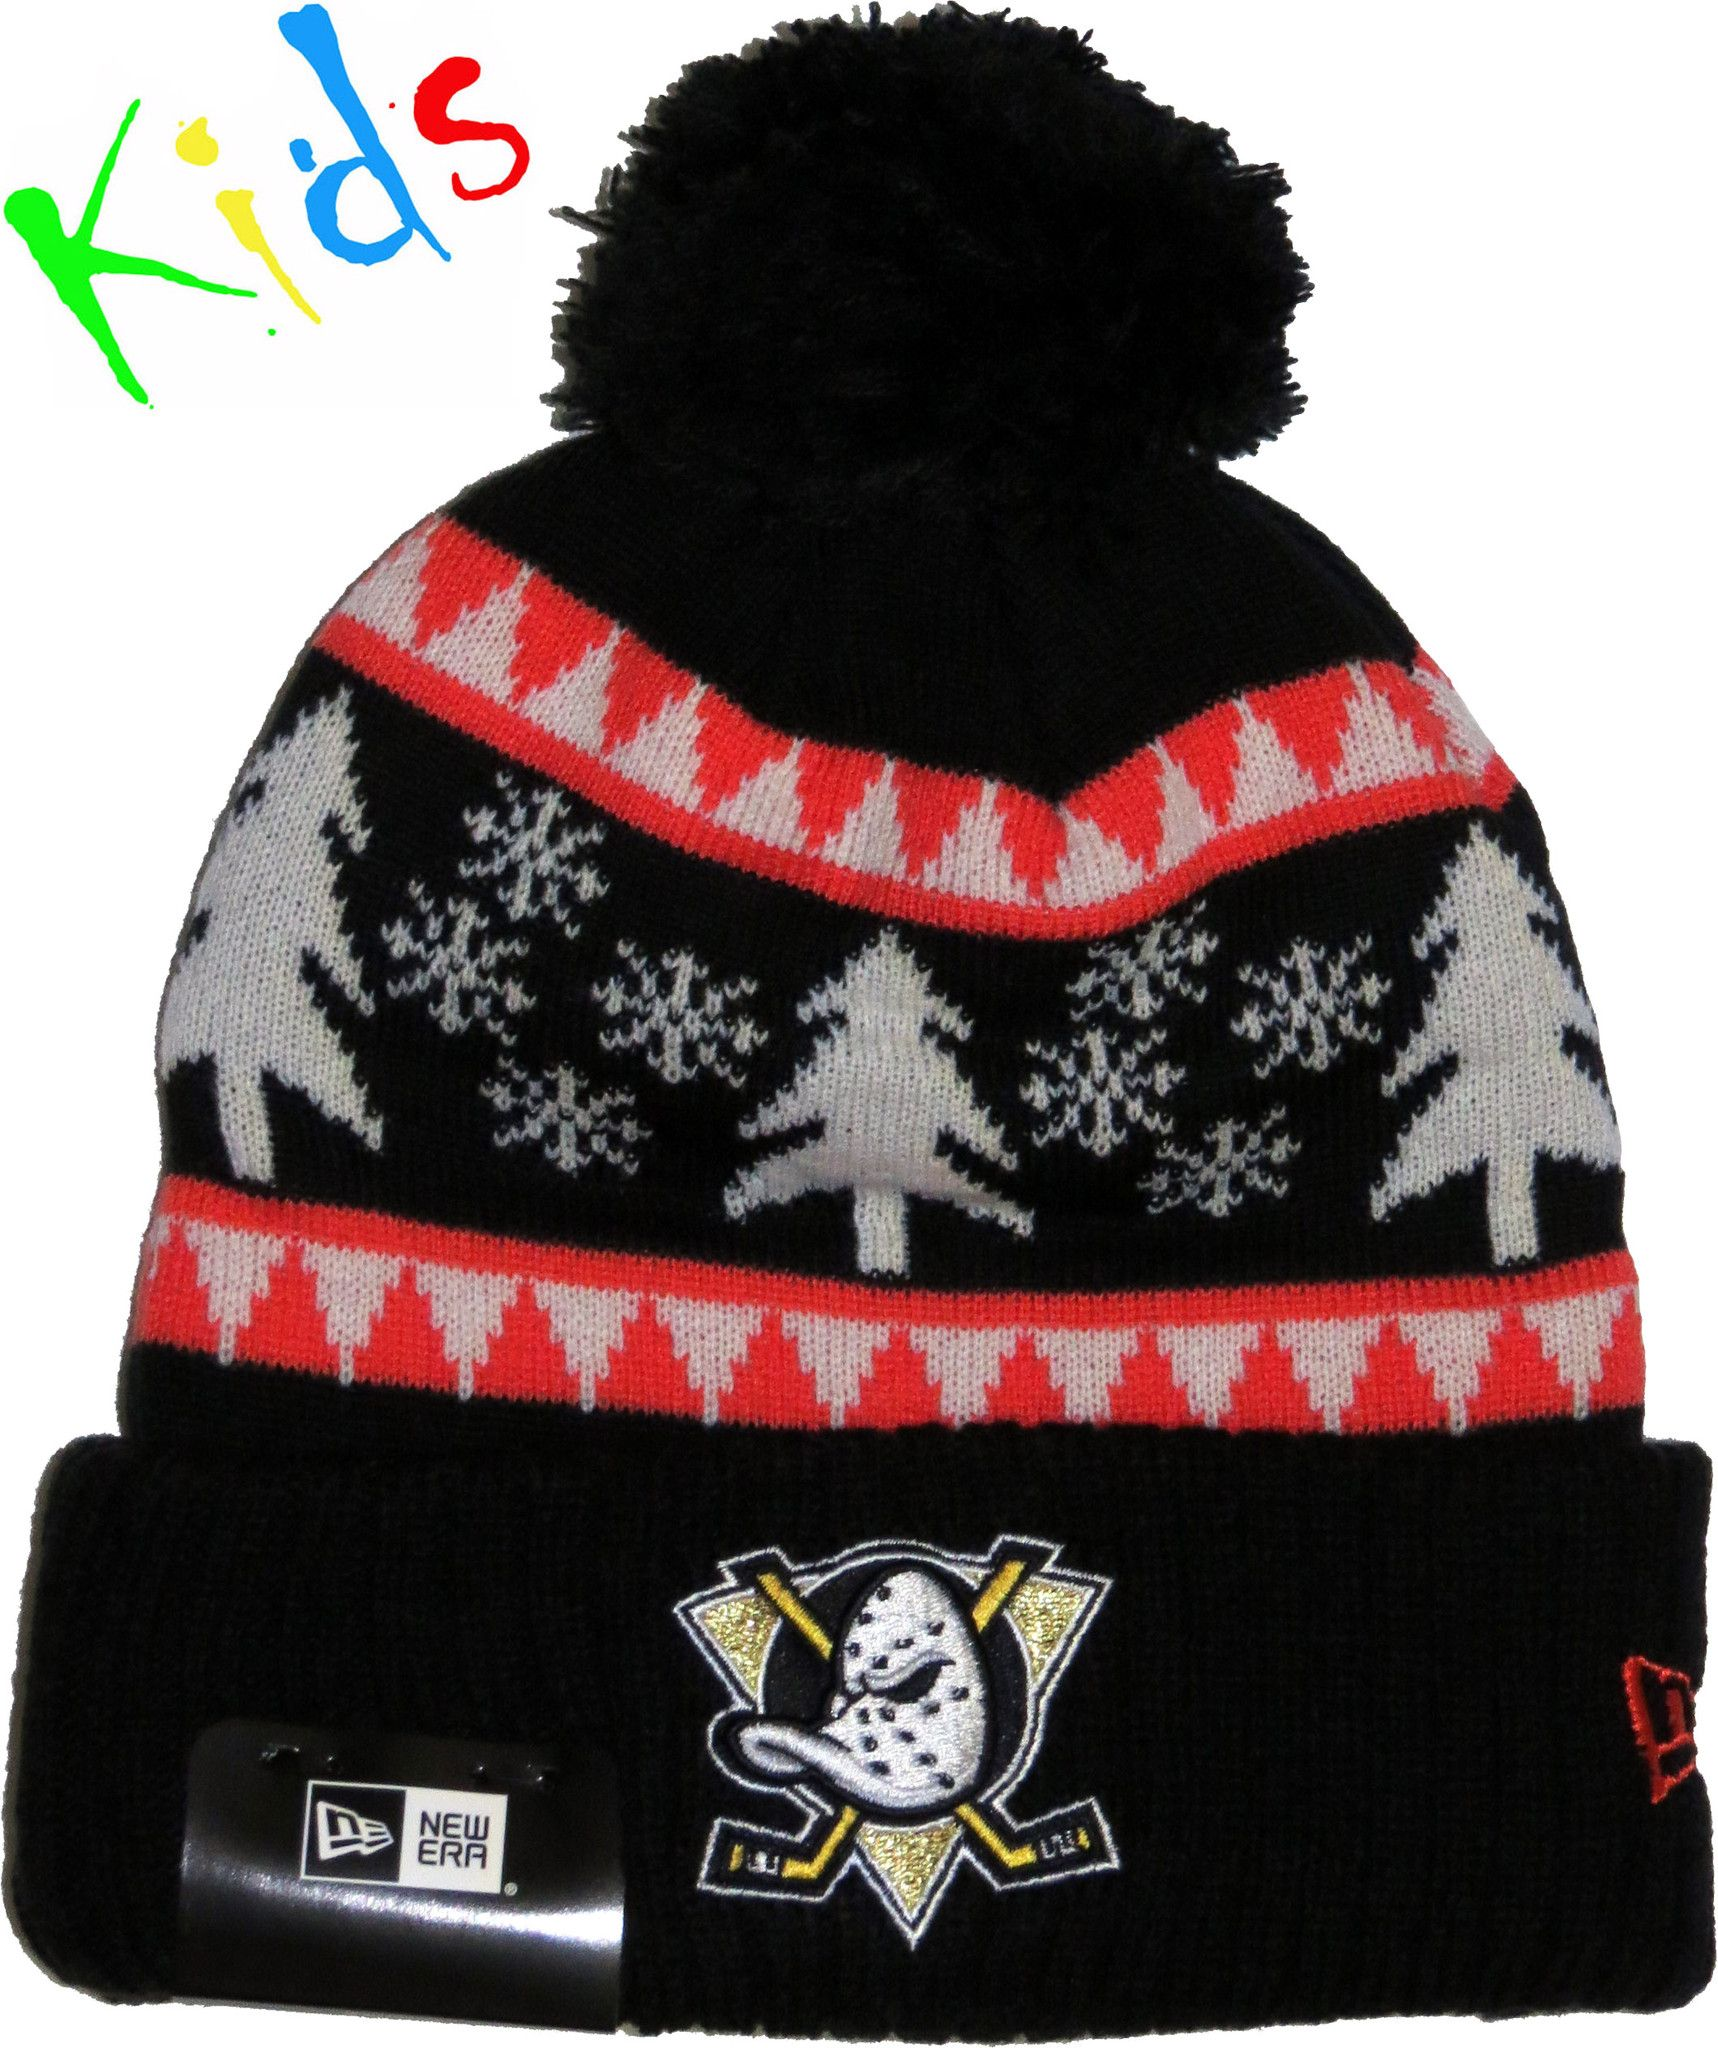 Anaheim Mighty Ducks New Era Kids Snow Pine Bobble Hat  a4159d7e129